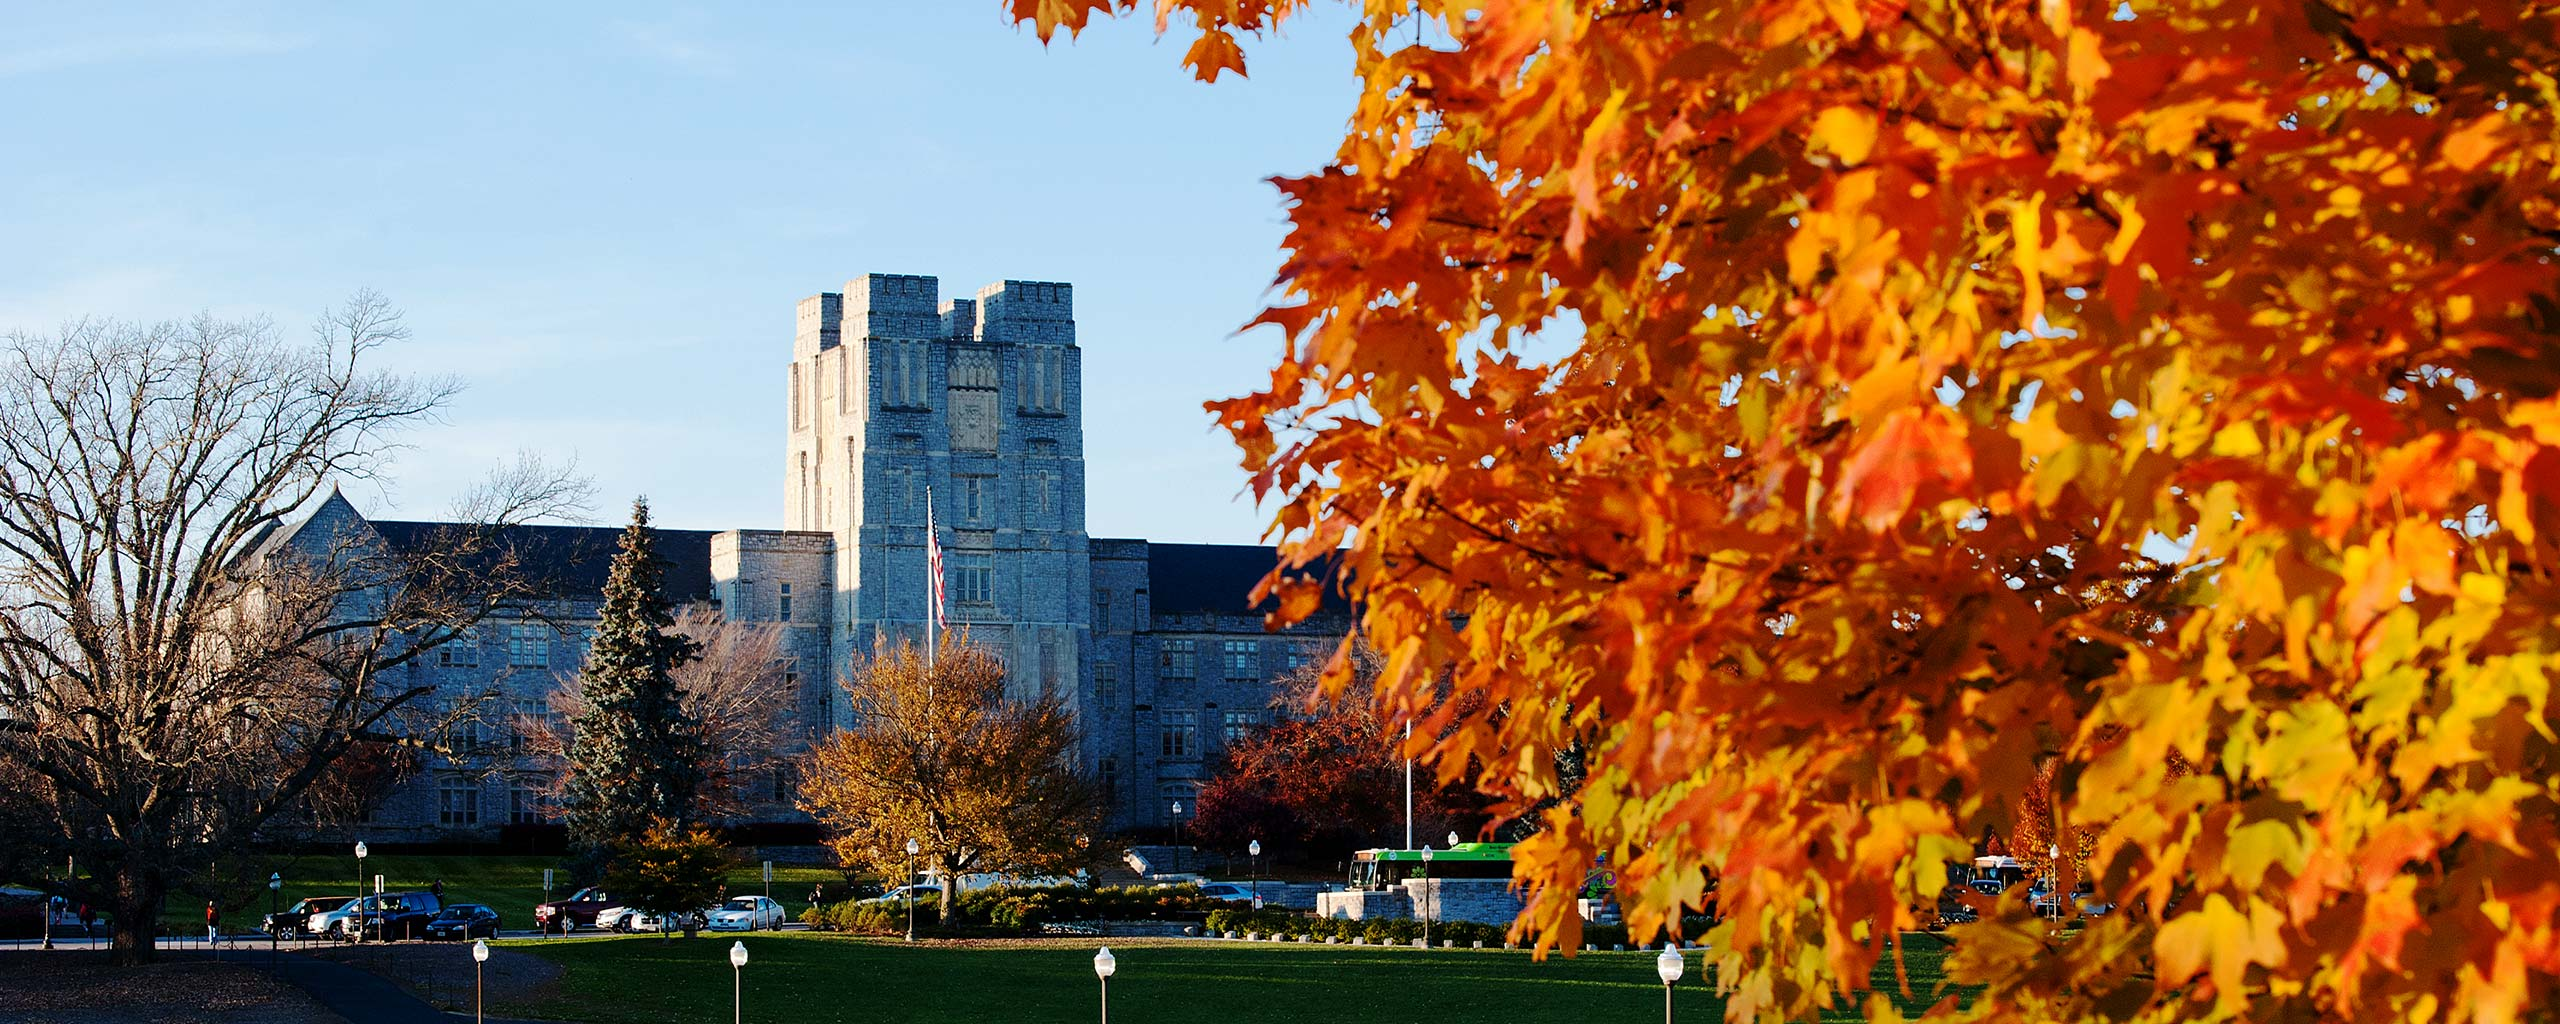 Virginia Tech is proud to host the Mid Atlantic Banner Users Group (MABUG) conference October 29-31, 2017